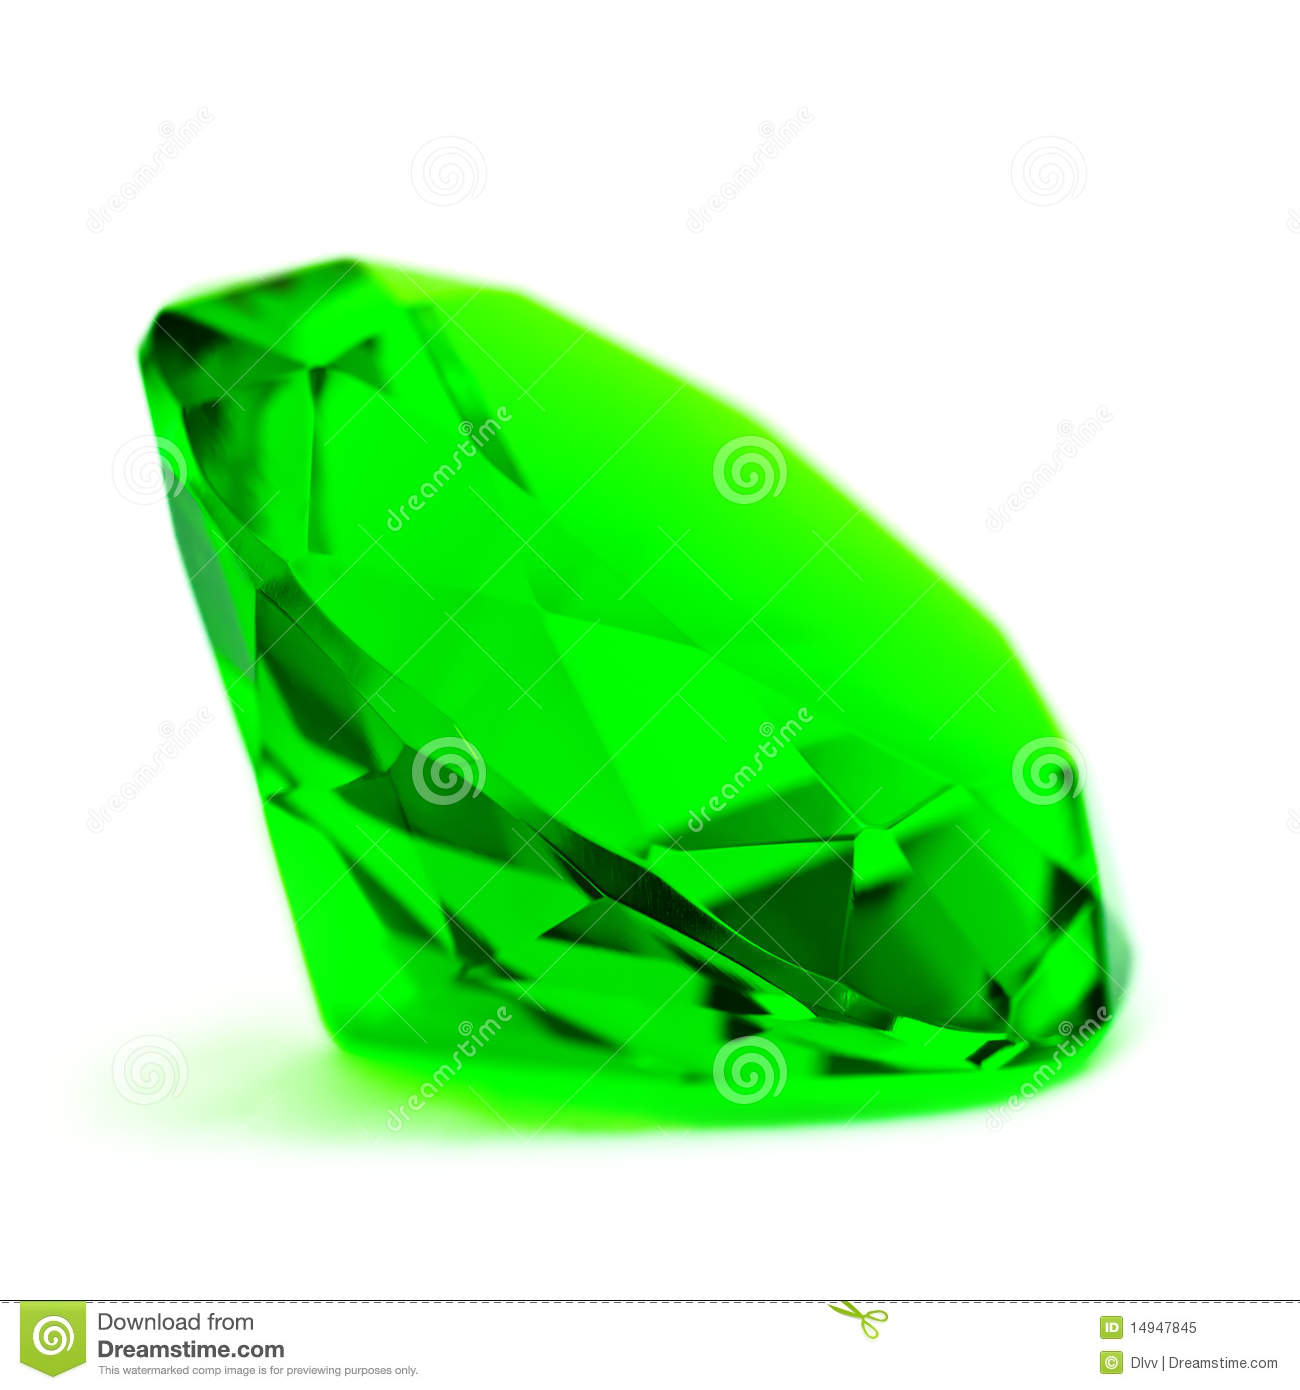 leibish gemstones natural green emerald gem gemstone pear